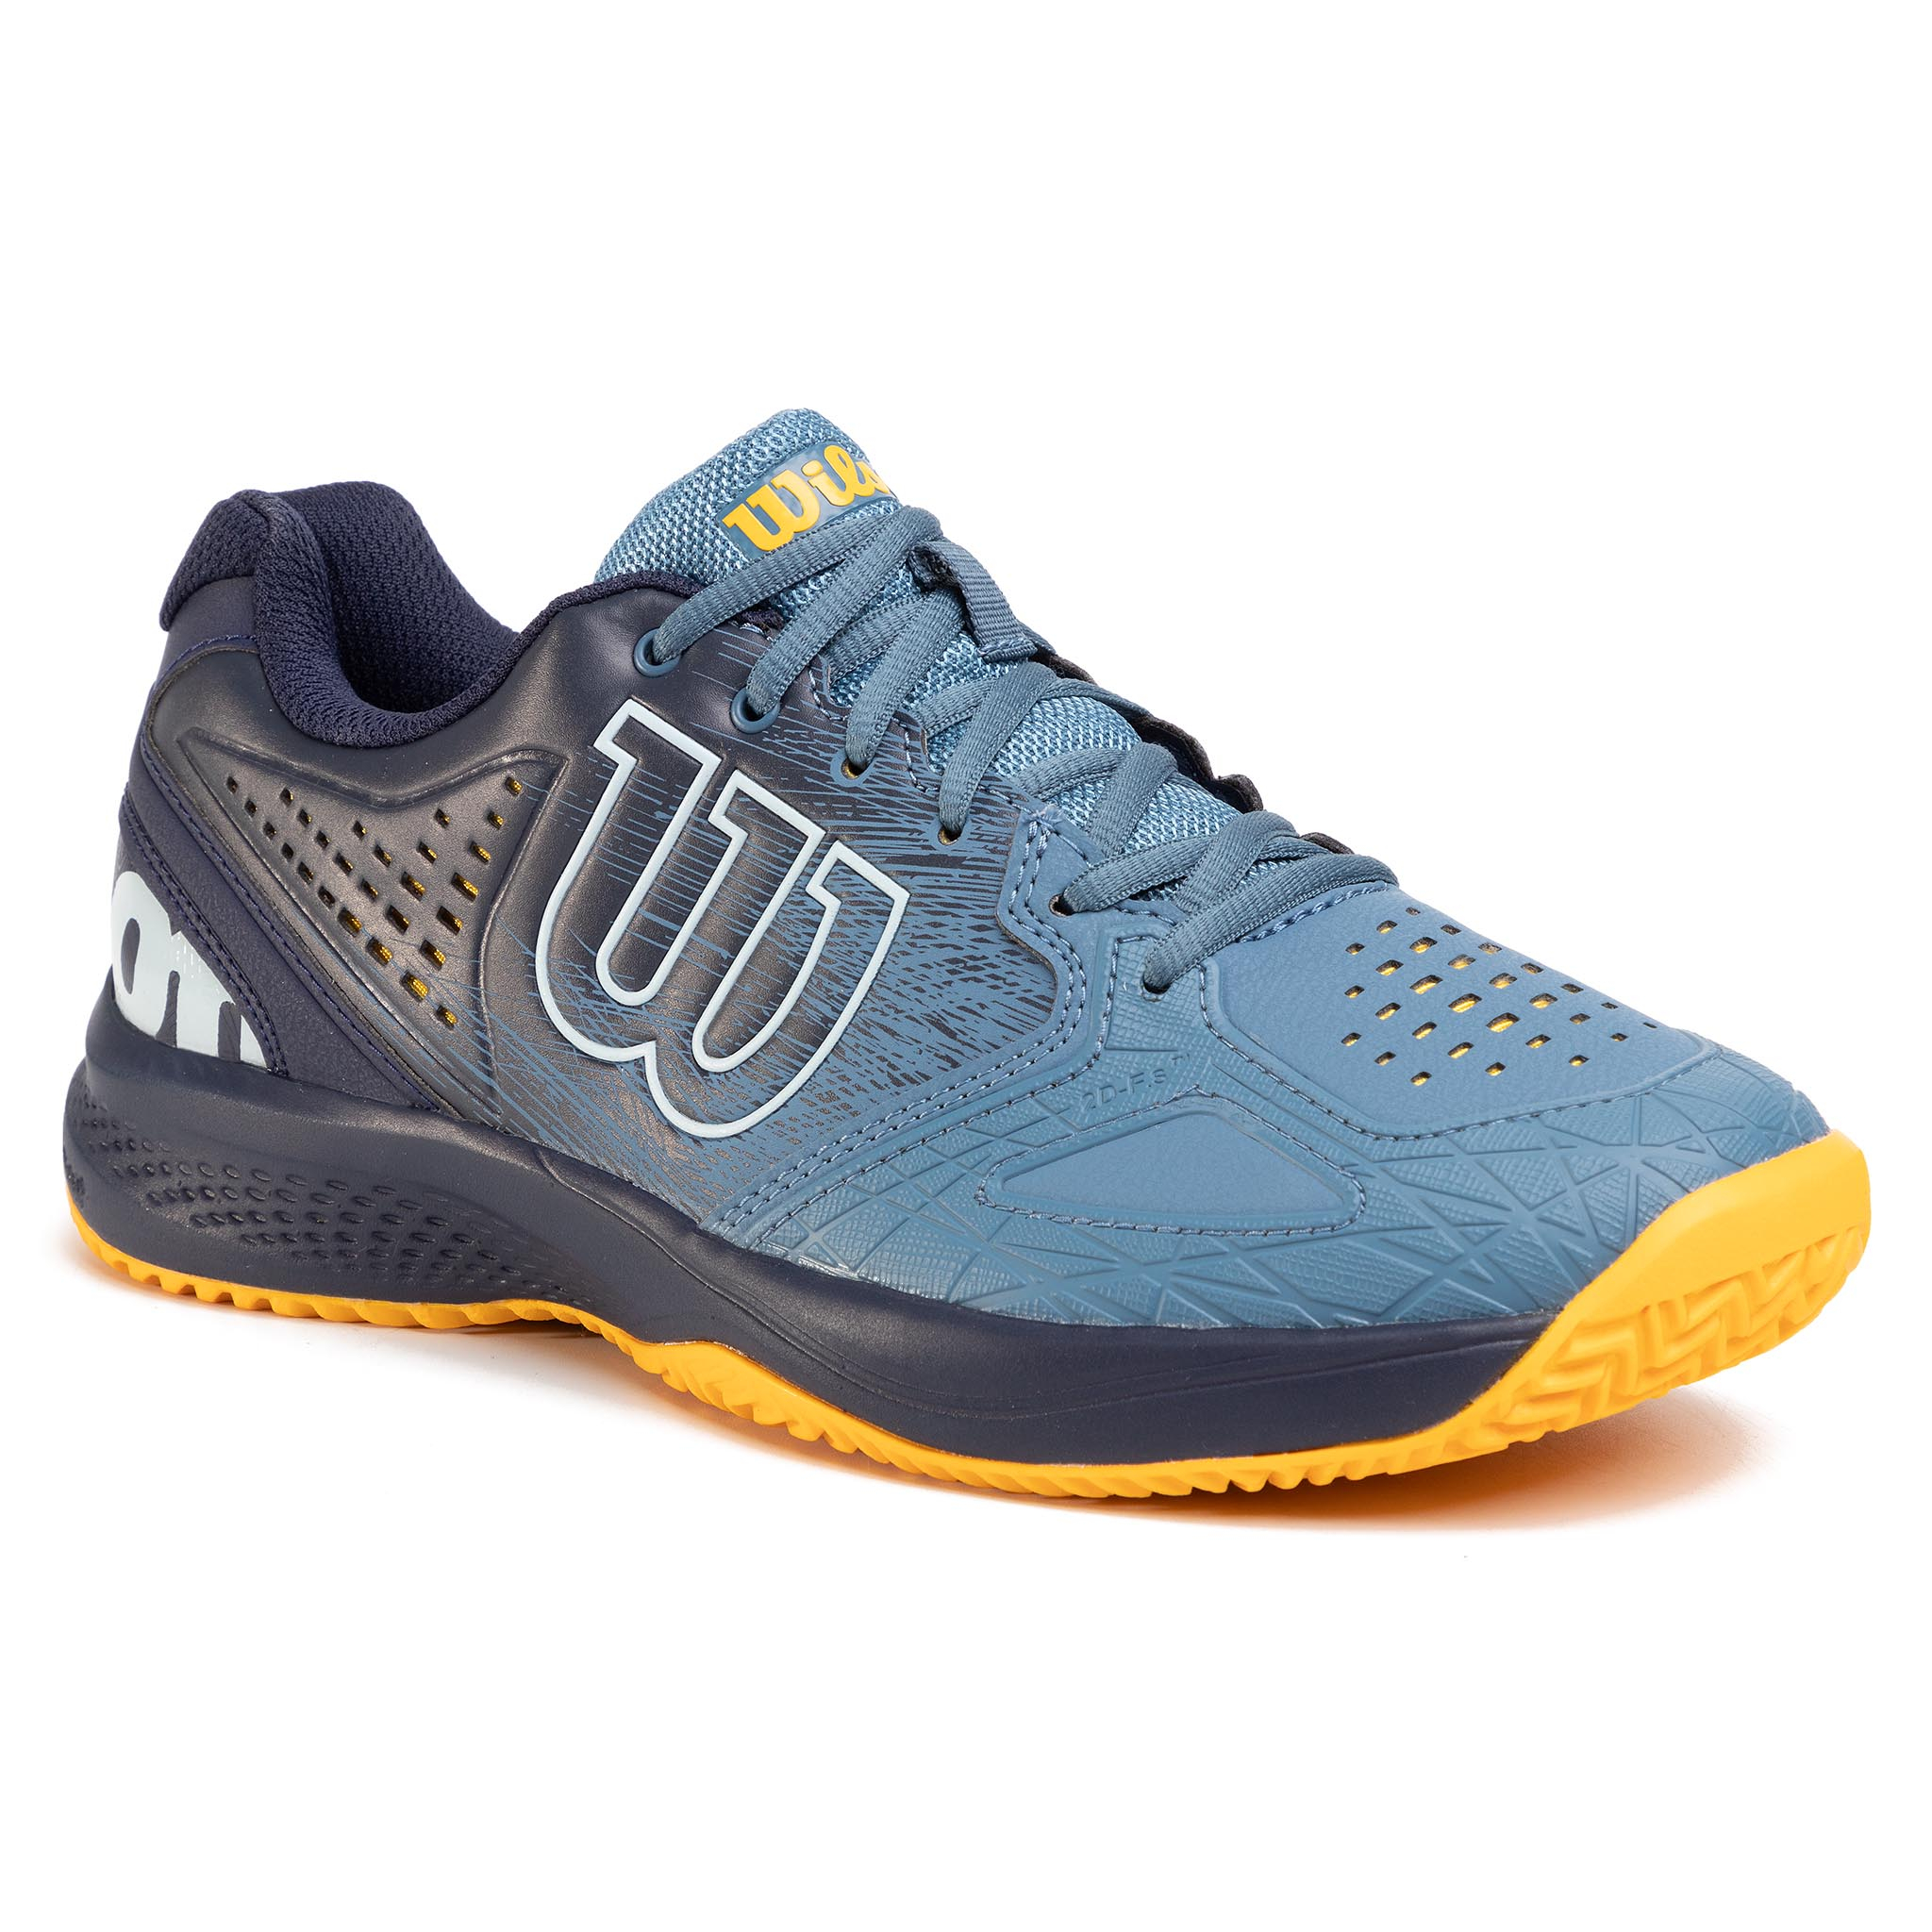 Pantofi Wilson - Kaos Comp 2.0 Wrs326160 Blue/Peacoat/Goldfusn imagine epantofi.ro 2021